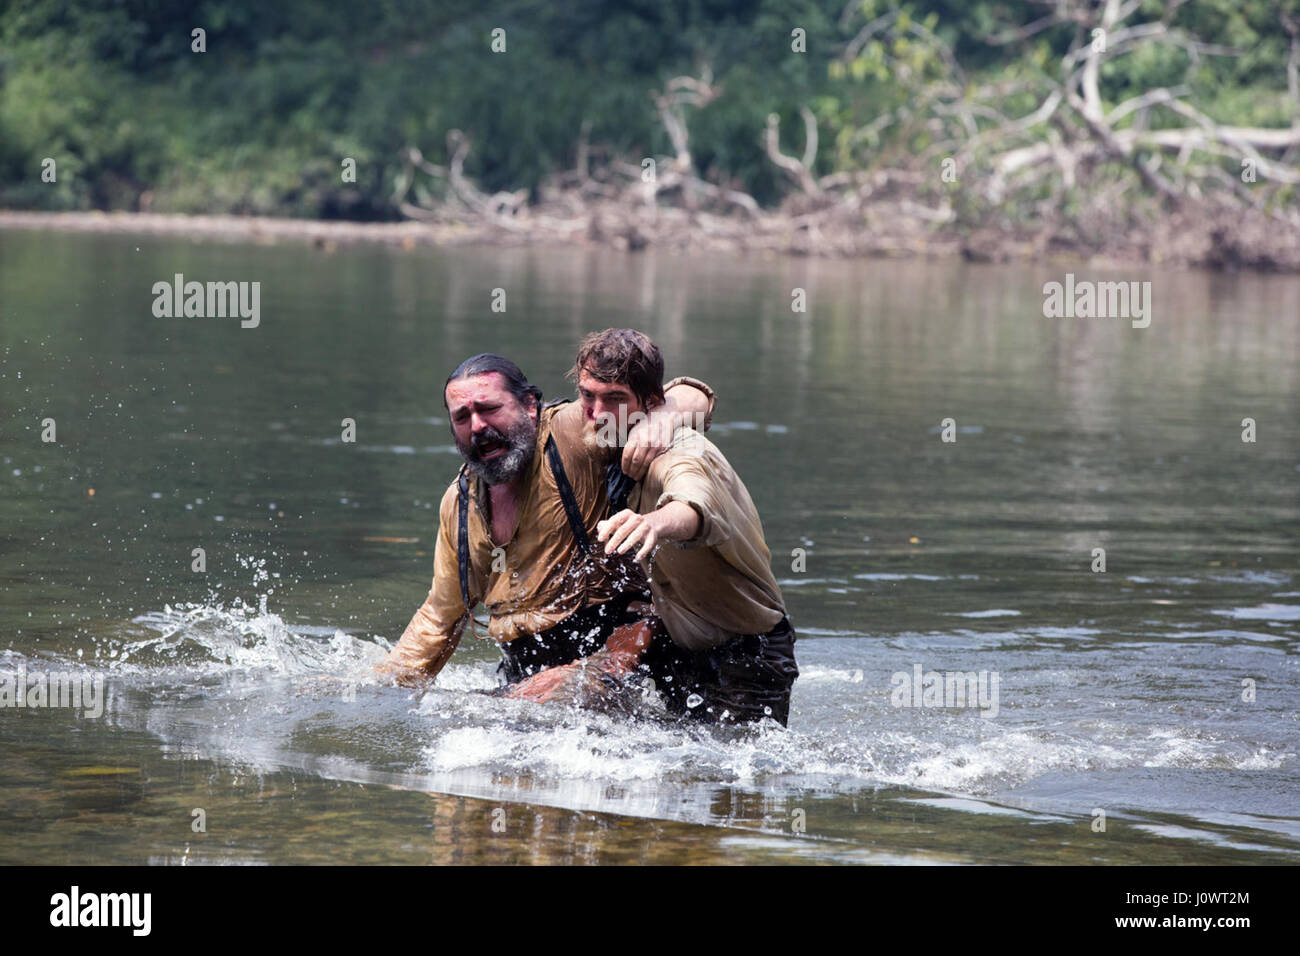 The Lost City of Z is an upcoming American action adventure biographical film, written and directed by James Gray, - Stock Image